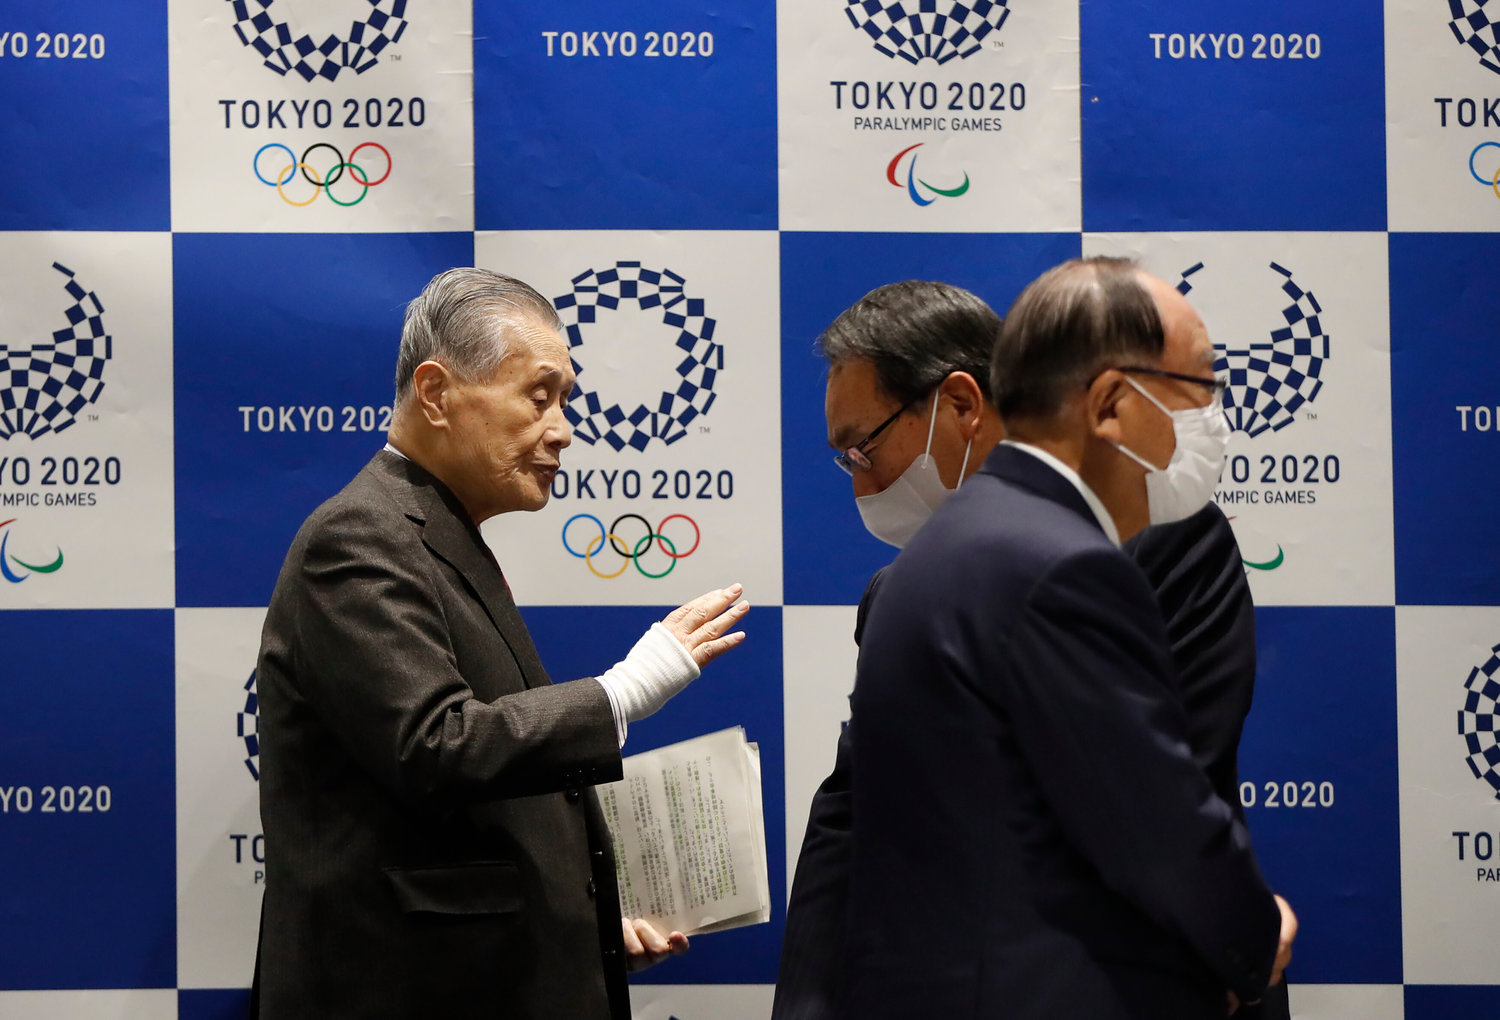 Yoshiro Mori, President of the Tokyo 2020 Olympic Games Organising Committee, talks with other board members wearing protective face masks  following an outbreak of the coronavirus disease (COVID-19), upon his arrival at Tokyo 2020 Executive Board Meeting in Tokyo, Japan March 30, 2020.  REUTERS/Issei Kato/Pool